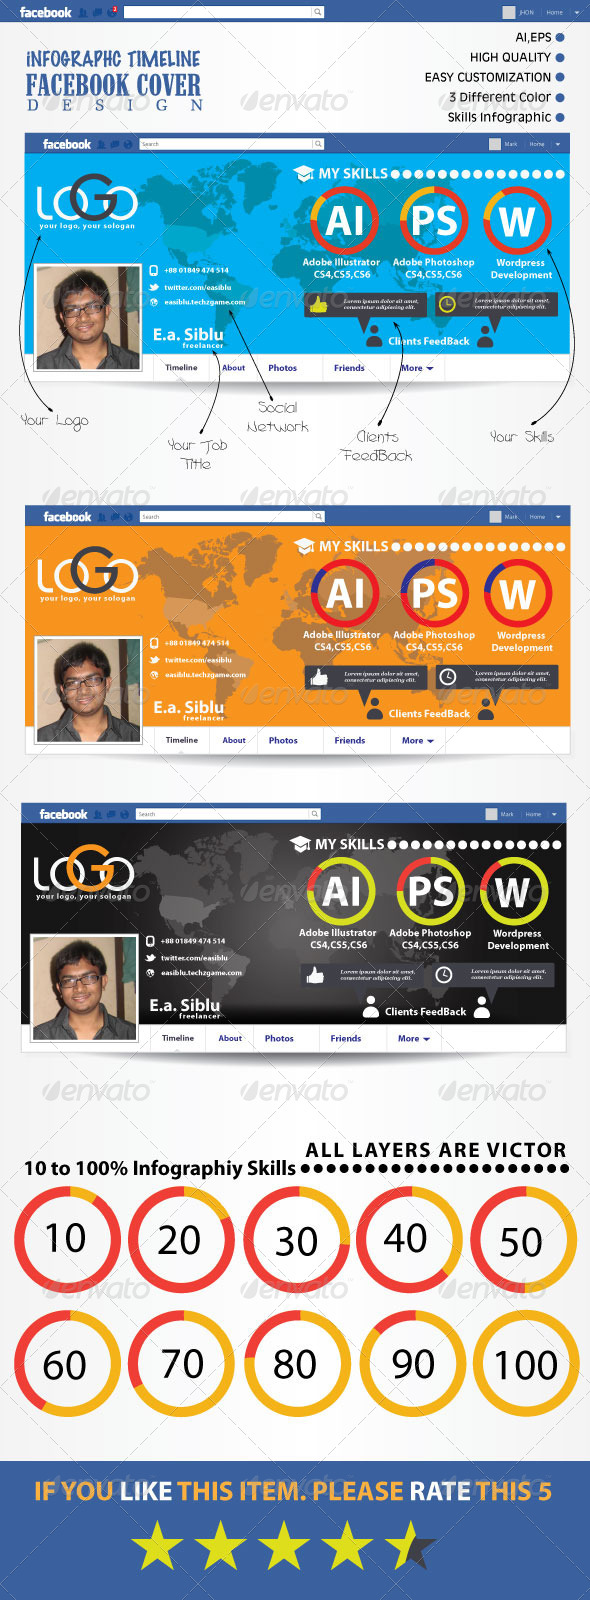 GraphicRiver Infographic FB Timeline Cover 5276592